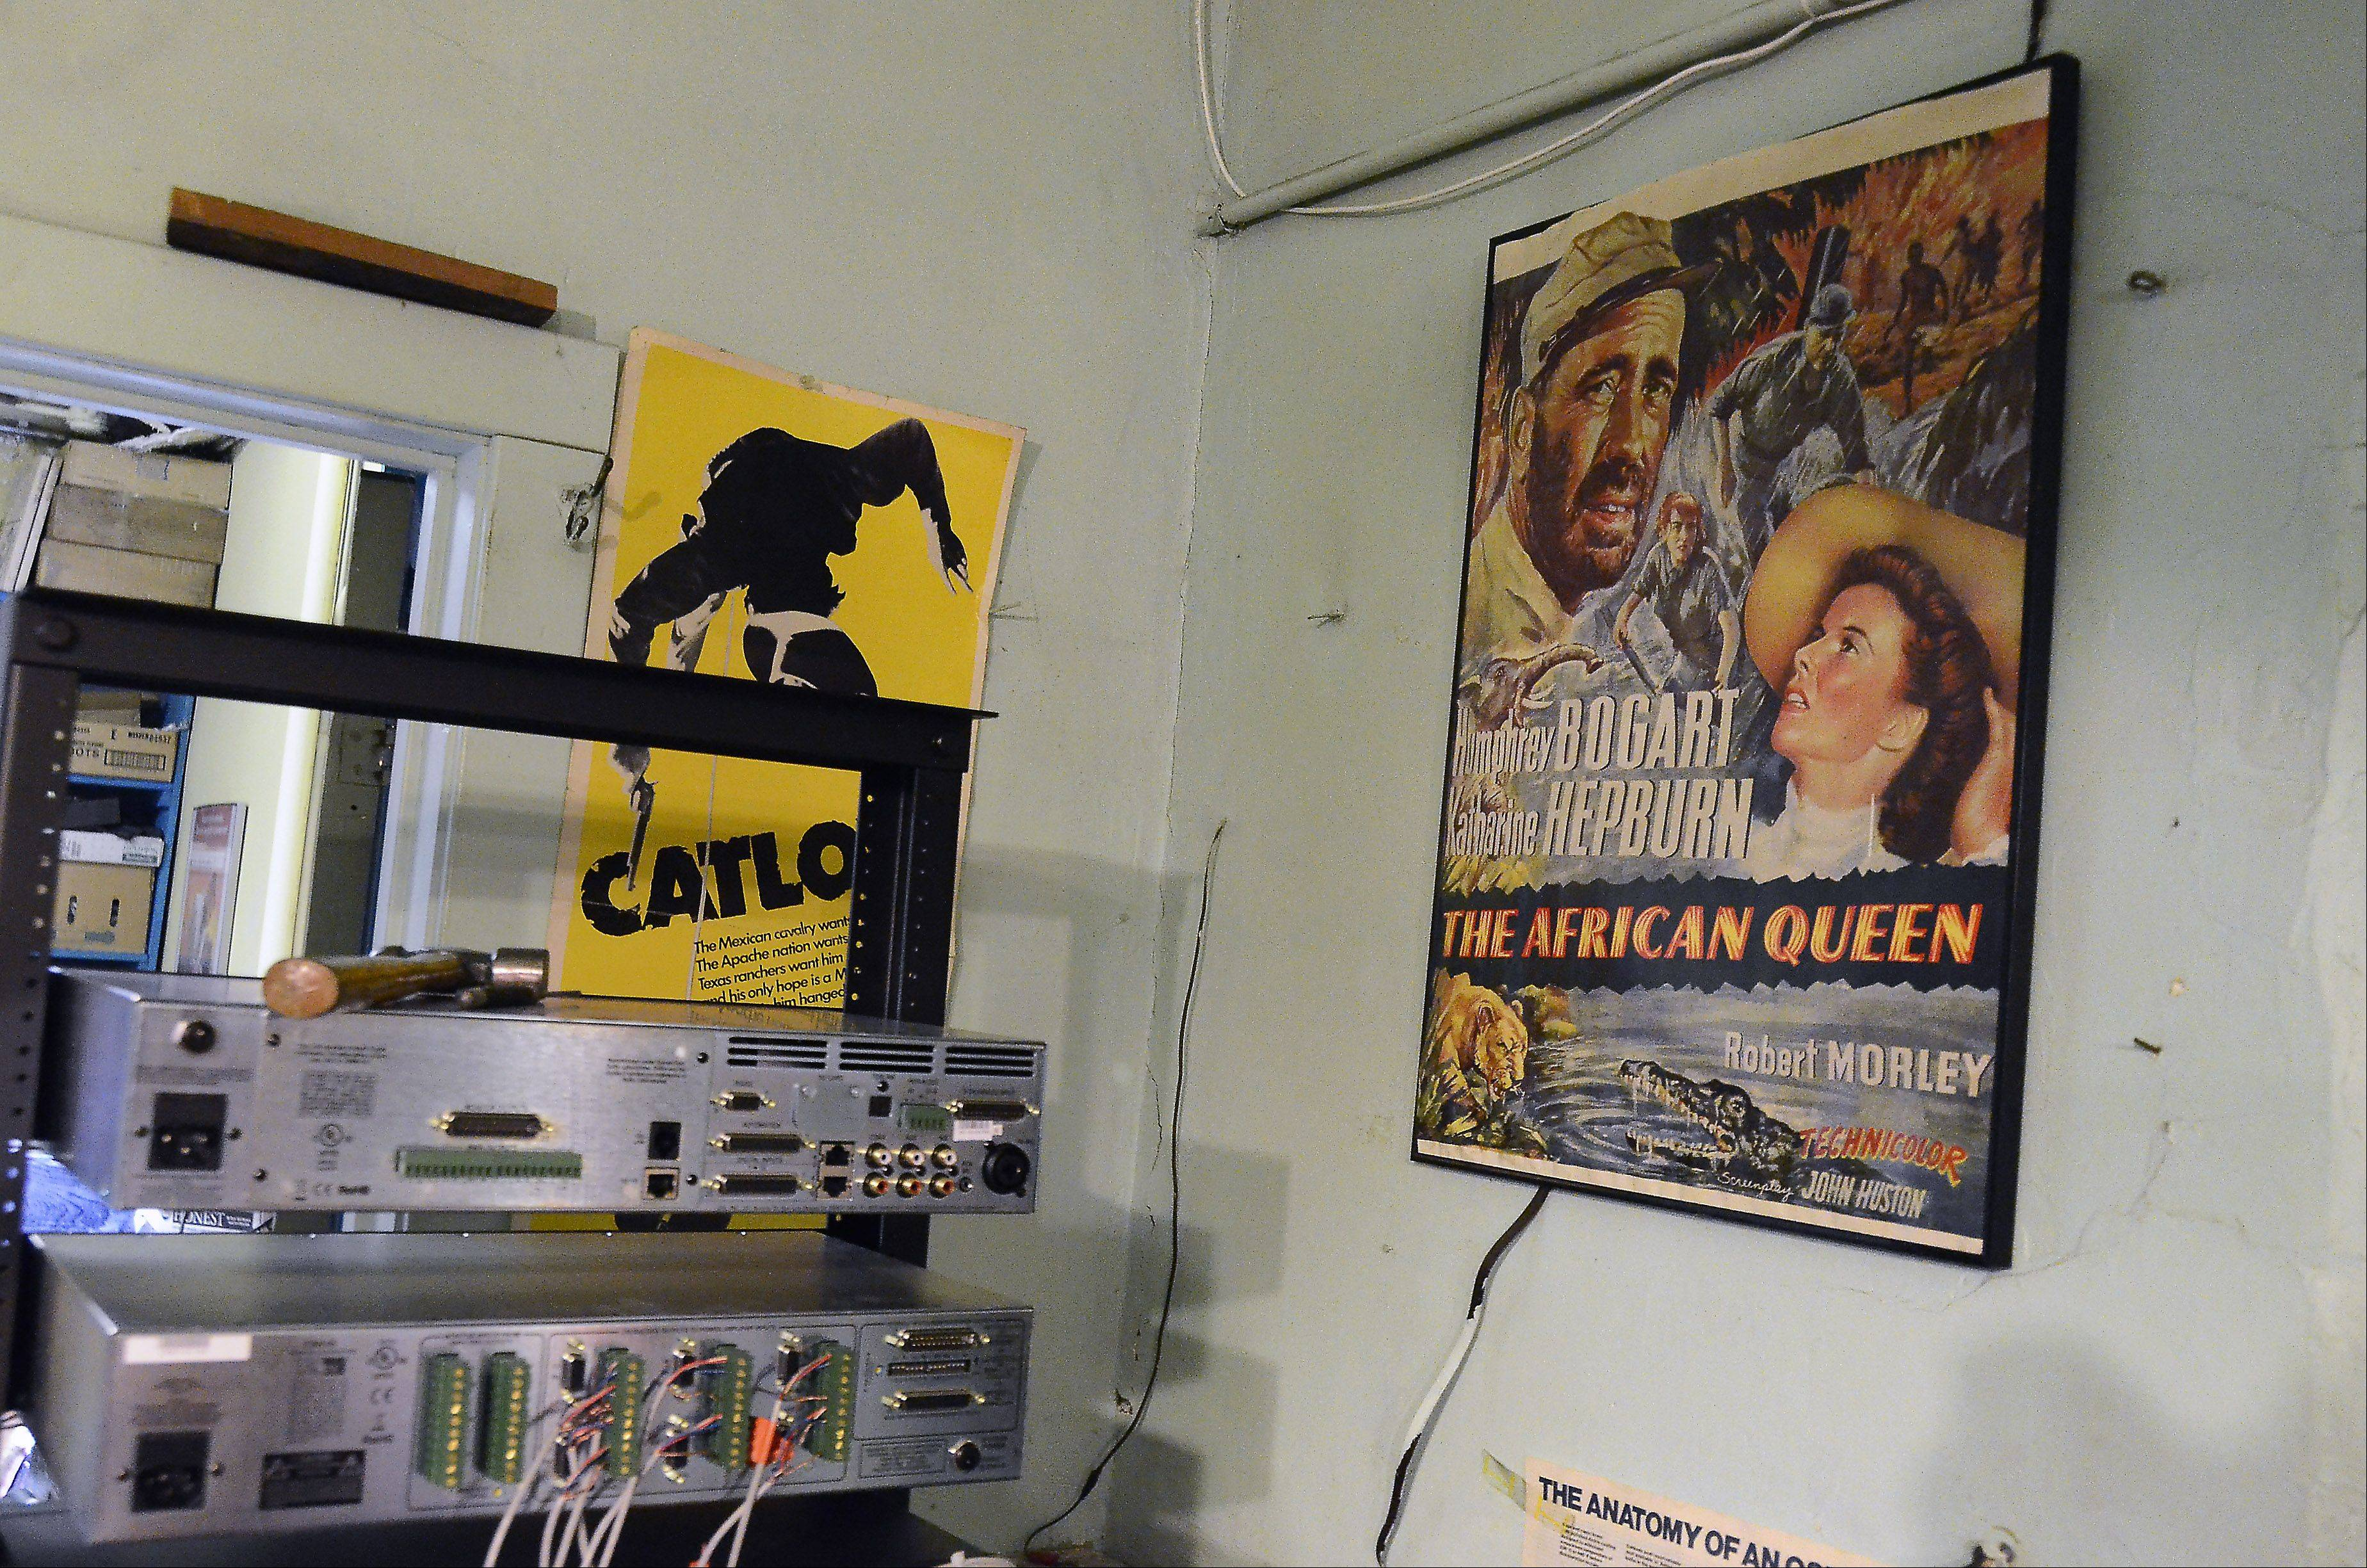 A movie poster for the African Queen from 1951 hangs on the wall next to a rack of new sound equipment in the projection booth at the Catlow theater in Barrington. The theater also is welcoming a new digital projector purchased largely through patron donations.